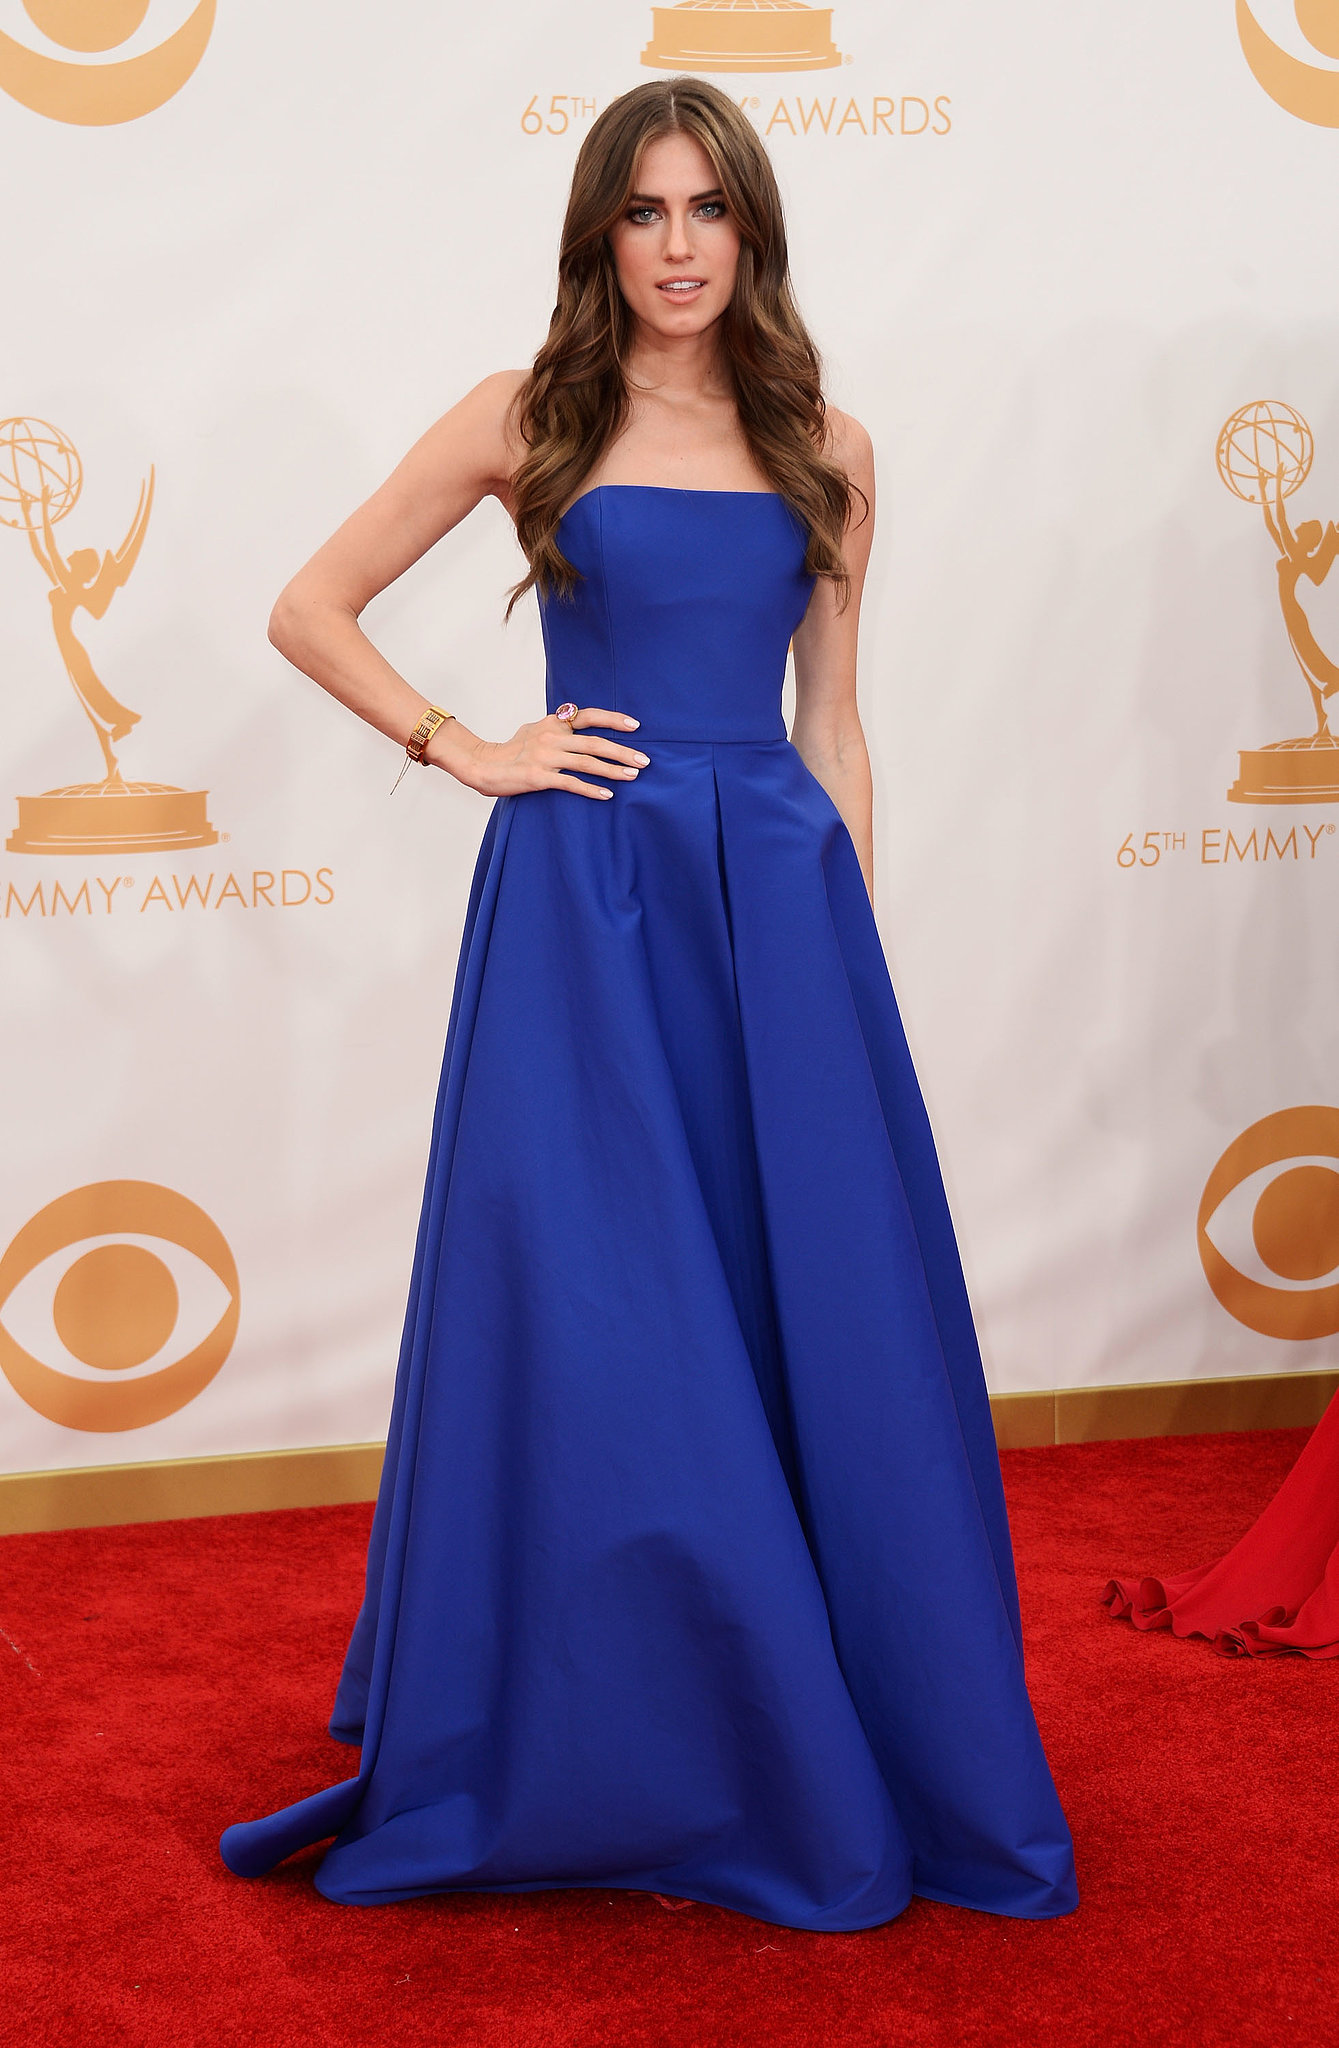 Girls star Allison Williams attended the Emmys.